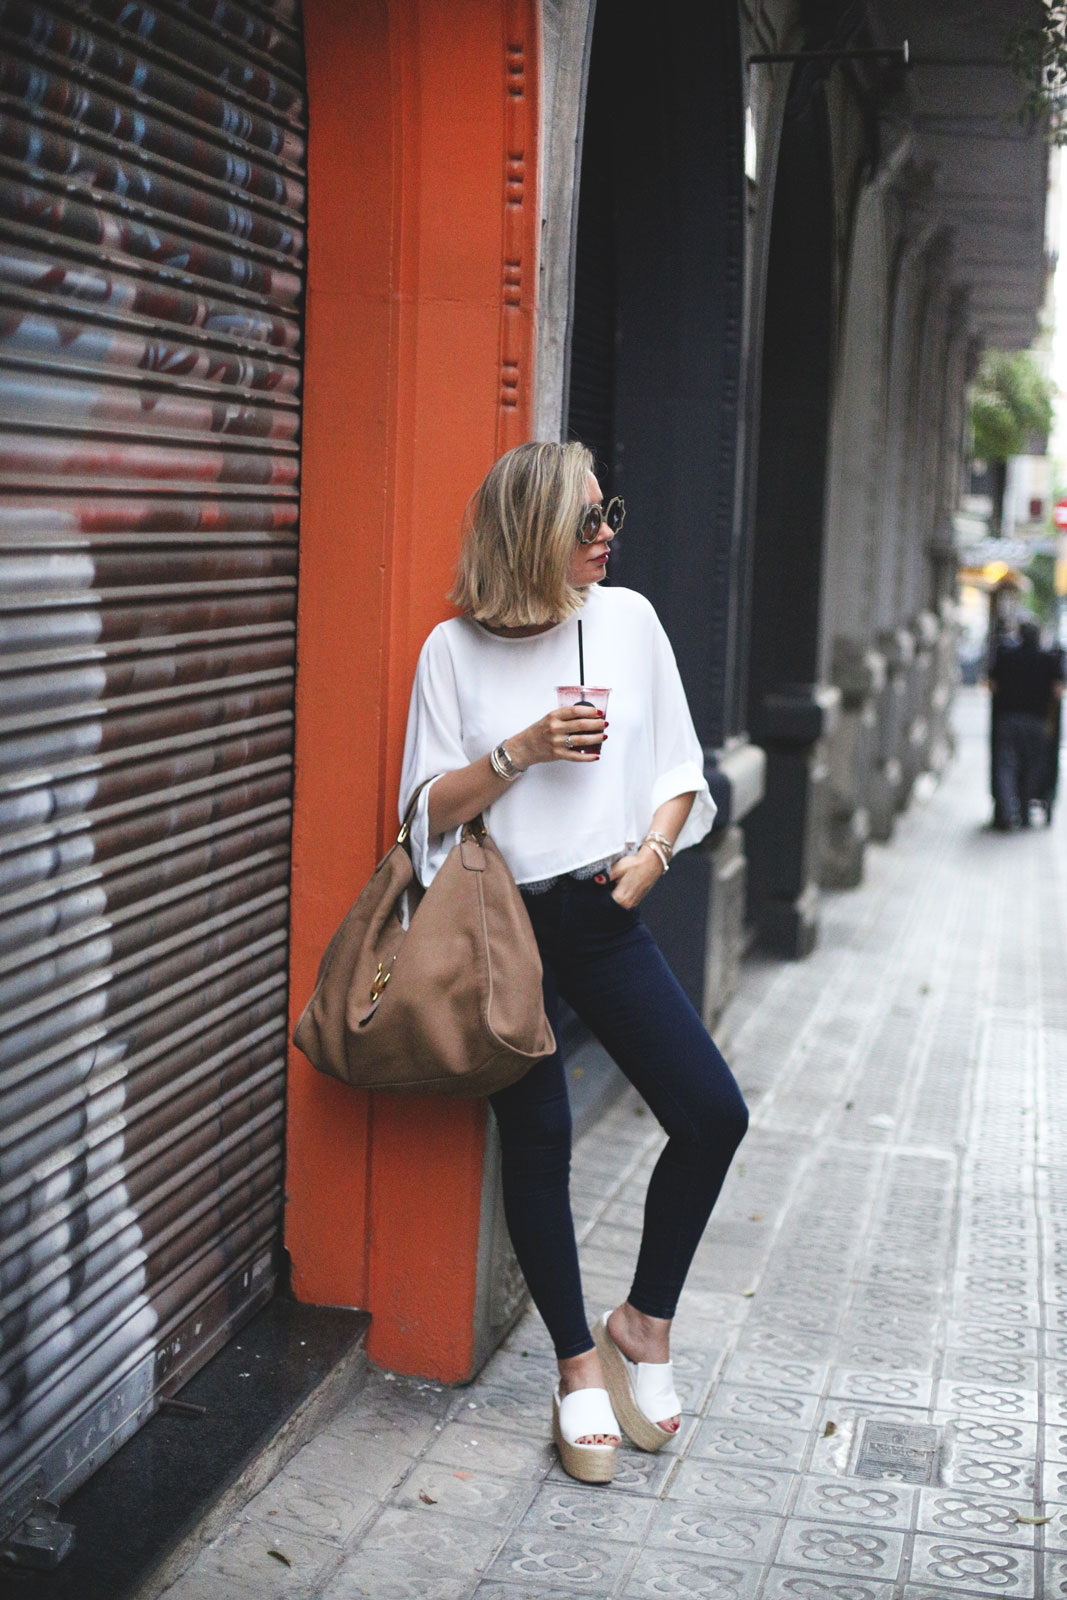 Priscila Betancort is rocking a hot summer style in these glorious white platform sandals, which add glamour and sexiness to an otherwise fairly casual look. You really can wear sandals such as these with anything; they're perfect with jeans or a summer dress! Top: Oxygene, Bag: Gucci, Jeans: Pepe Jeans, Wedges: Asos.